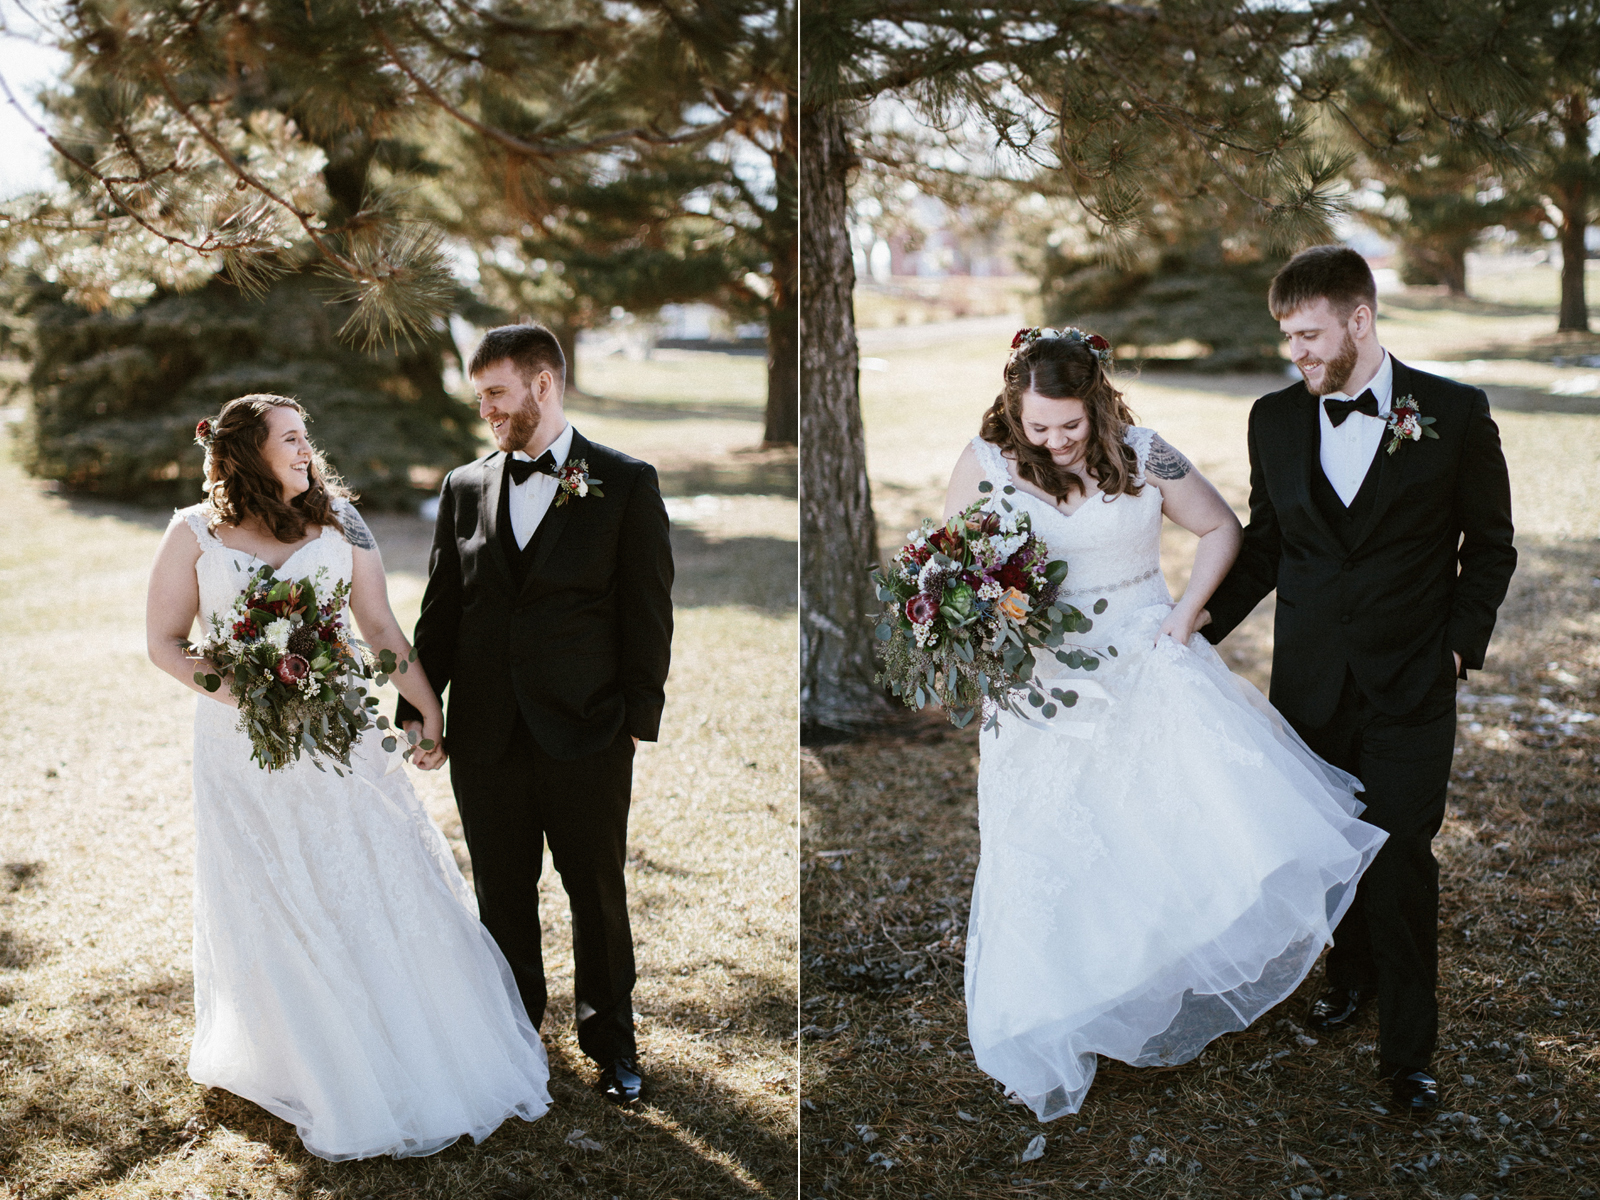 Matt&Amanda_SiouxFalls_DesMoines_Wedding_Photographer_04.jpg